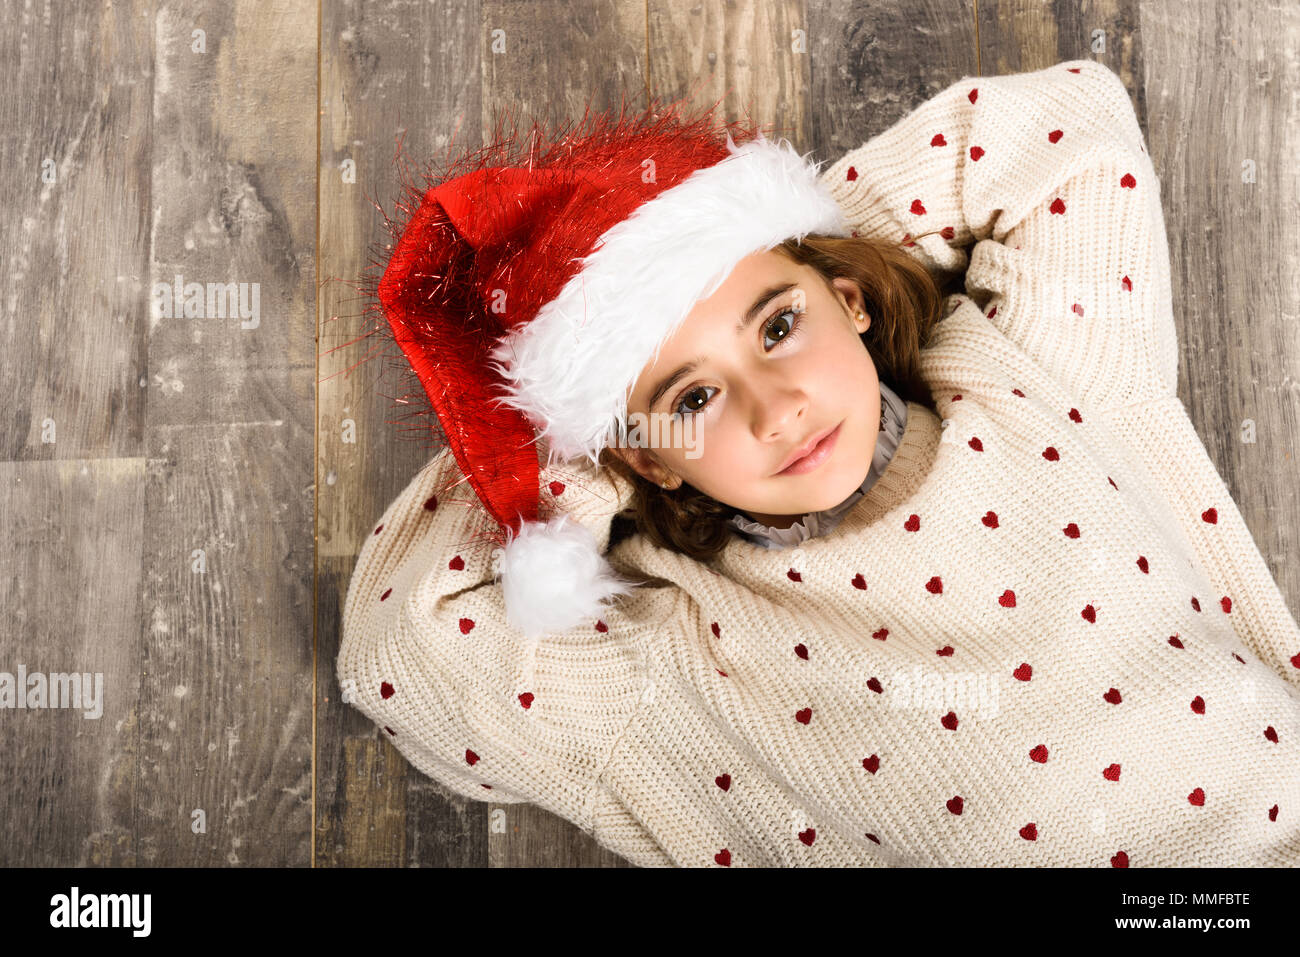 8cc8407ae9f9 Adorable little girl wearing santa hat laying on wooden floor ...